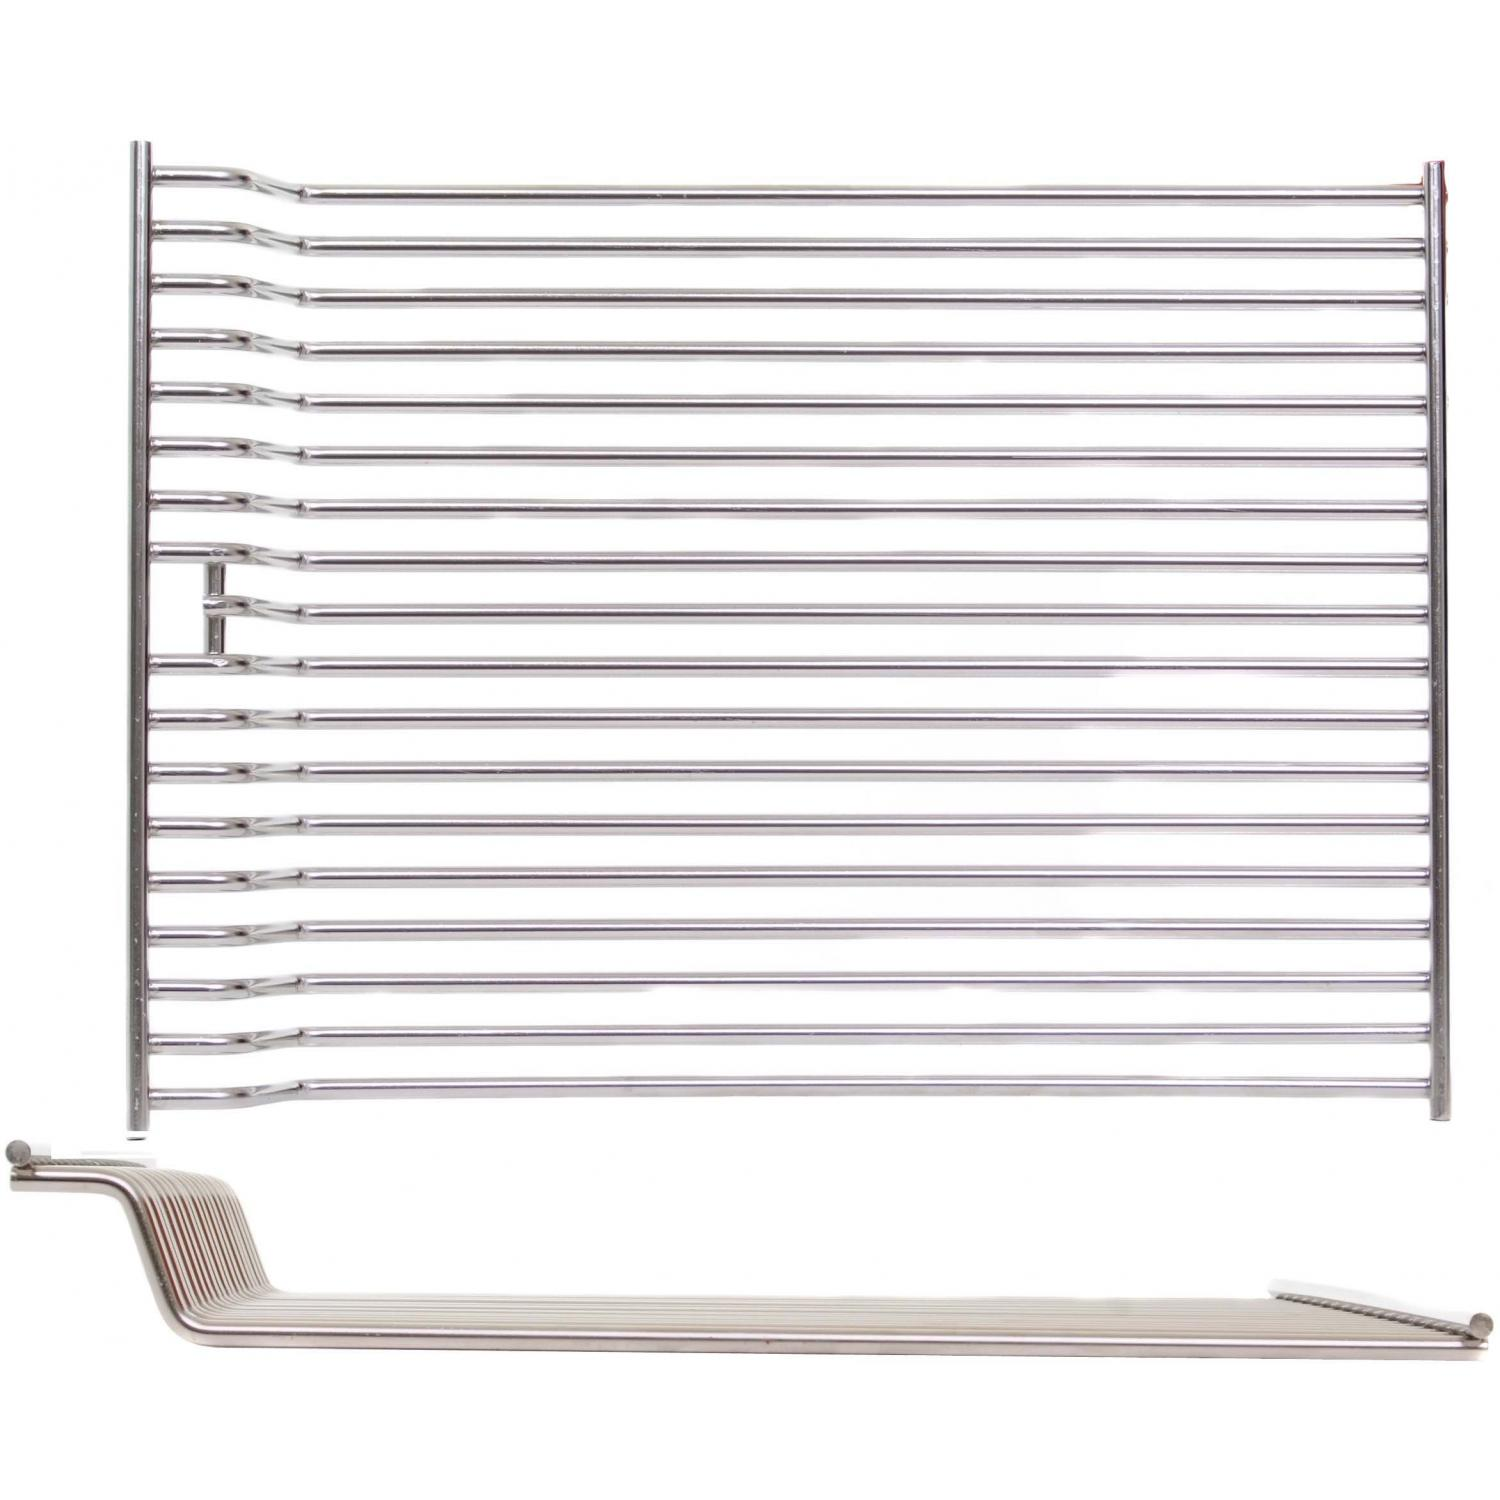 Broilmaster Stainless Steel Rod Cooking Grids For Size 3 Gas Grills (Set Of 2)